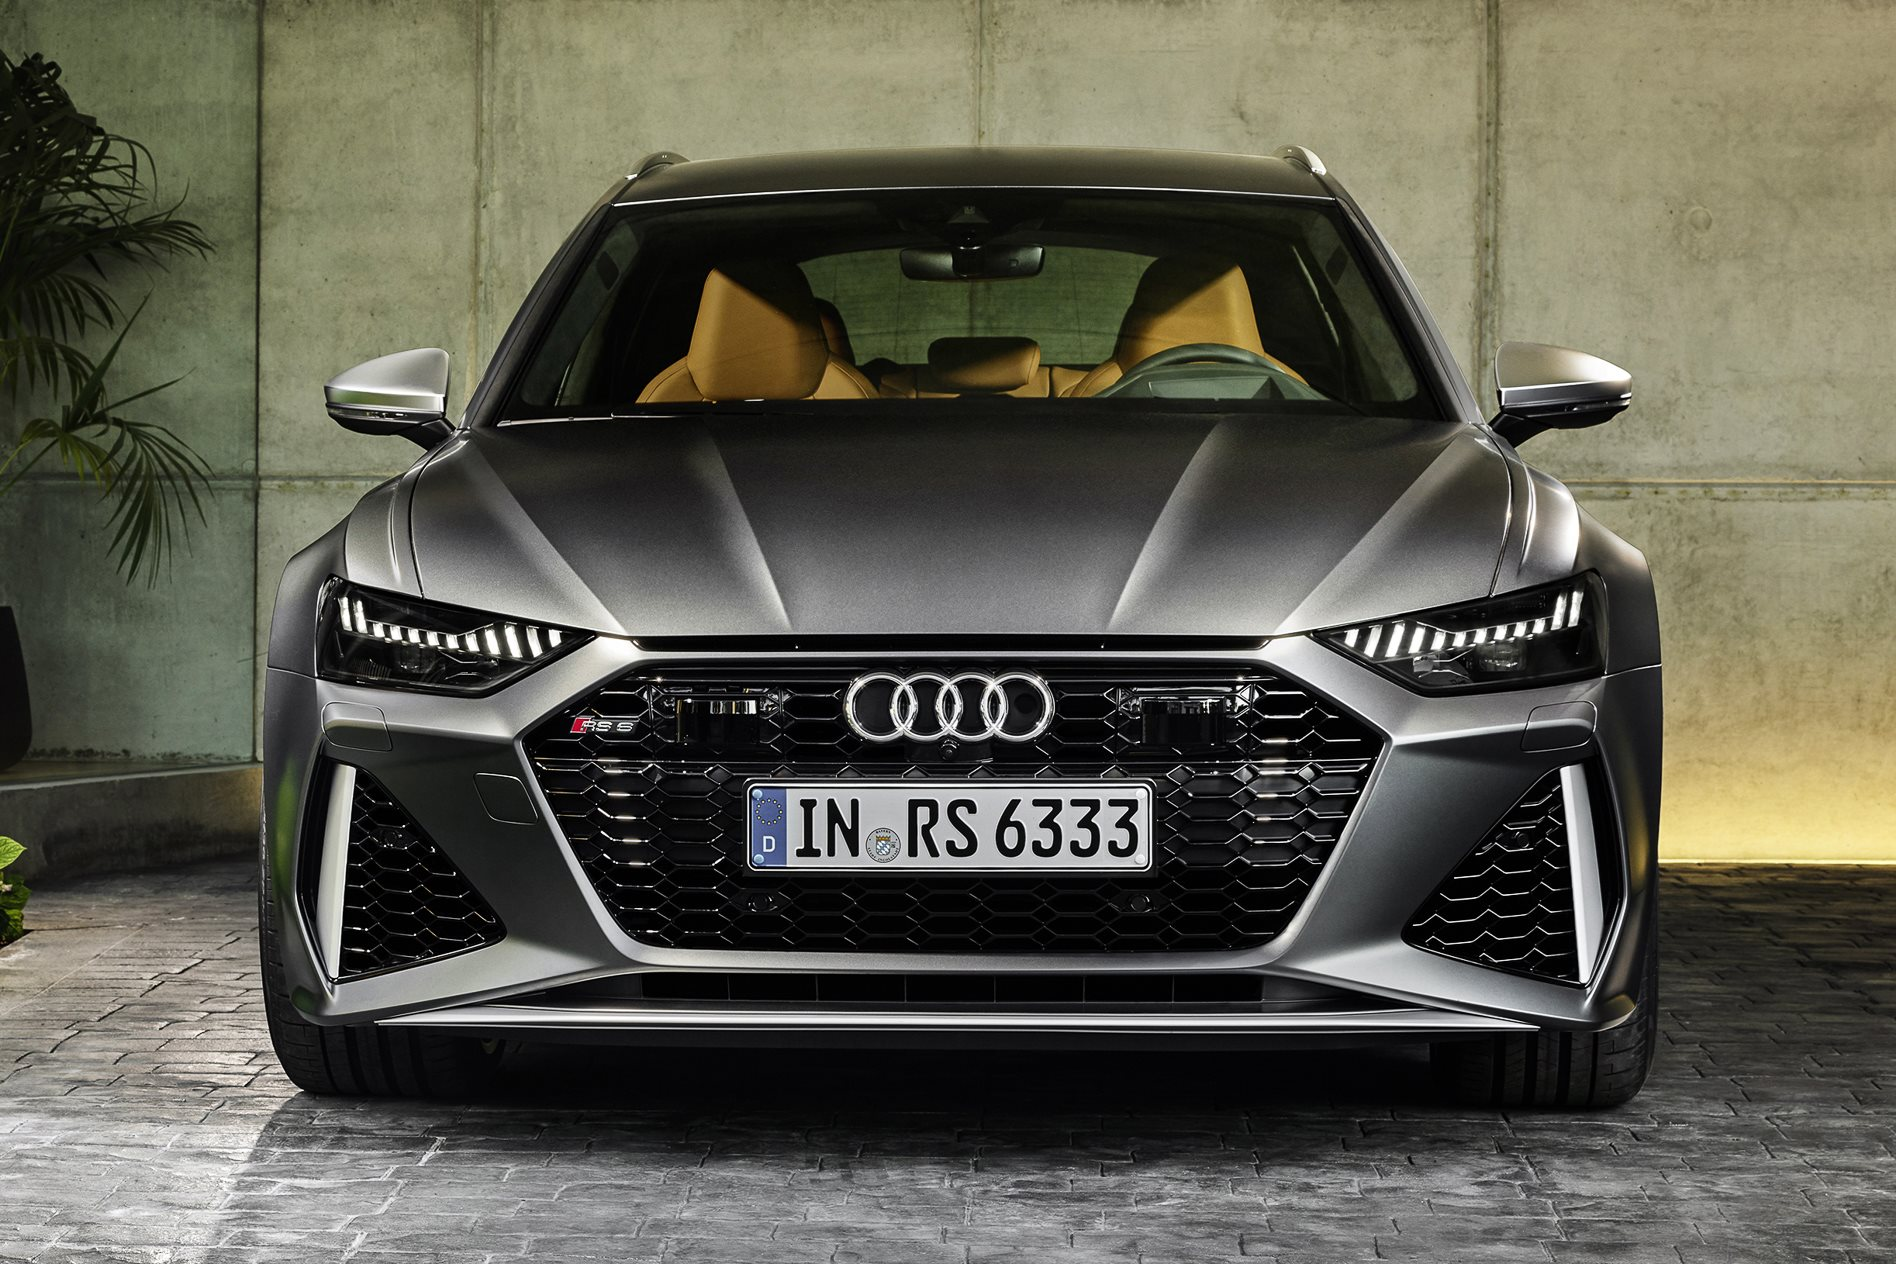 Audi RS6 Avant is the dog hauler you've been looking for